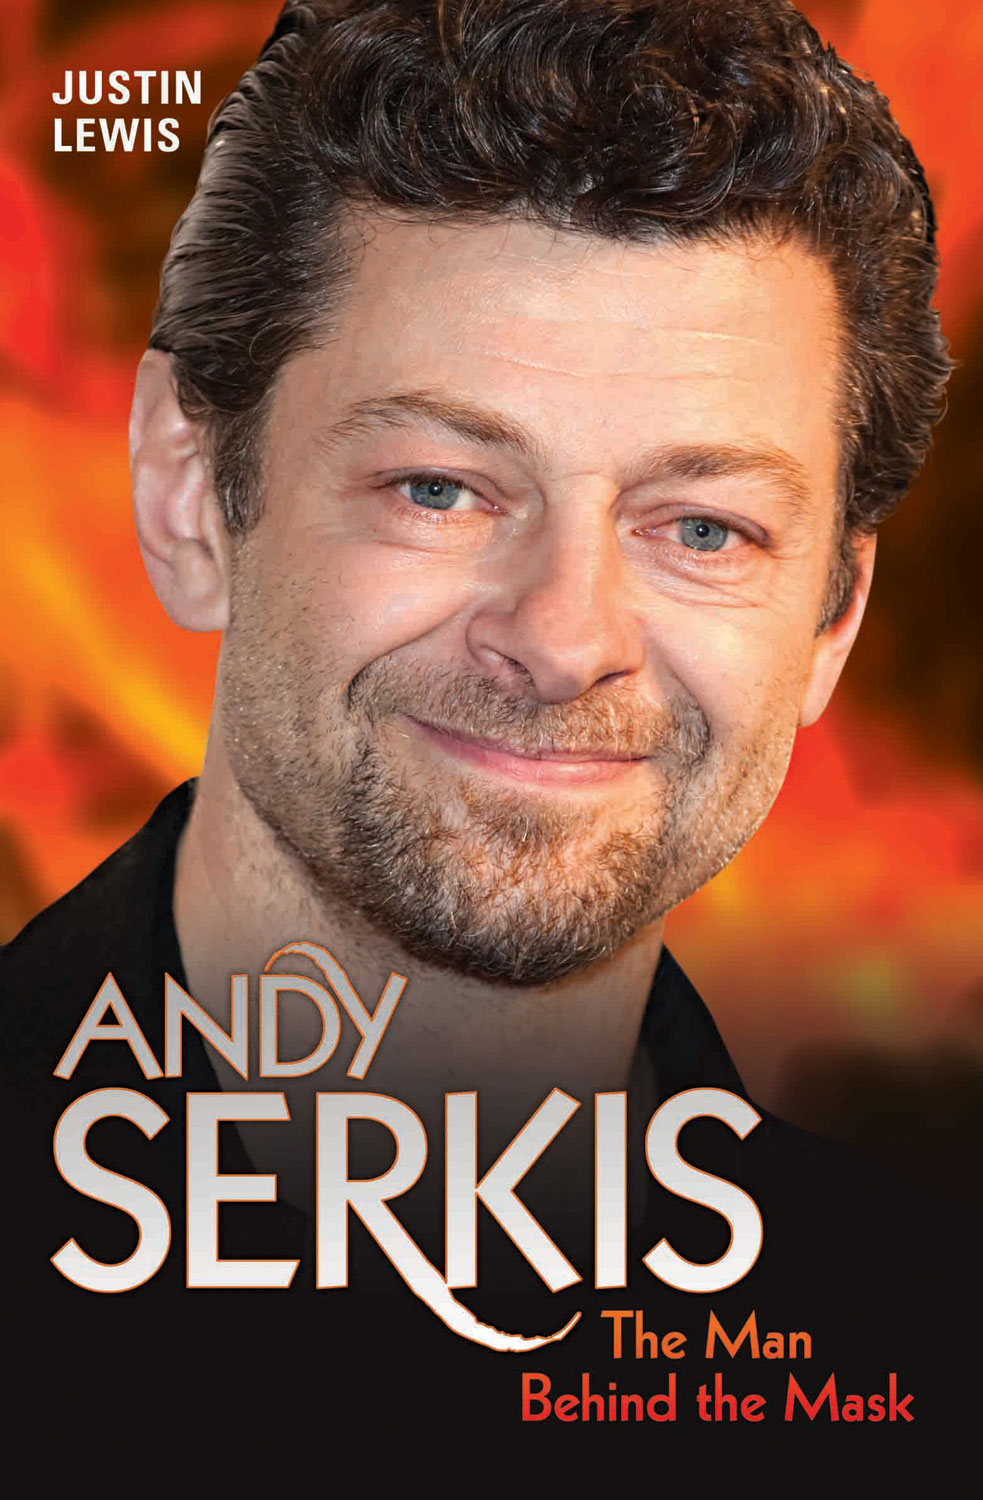 Andy Serkis By: Justin Lewis